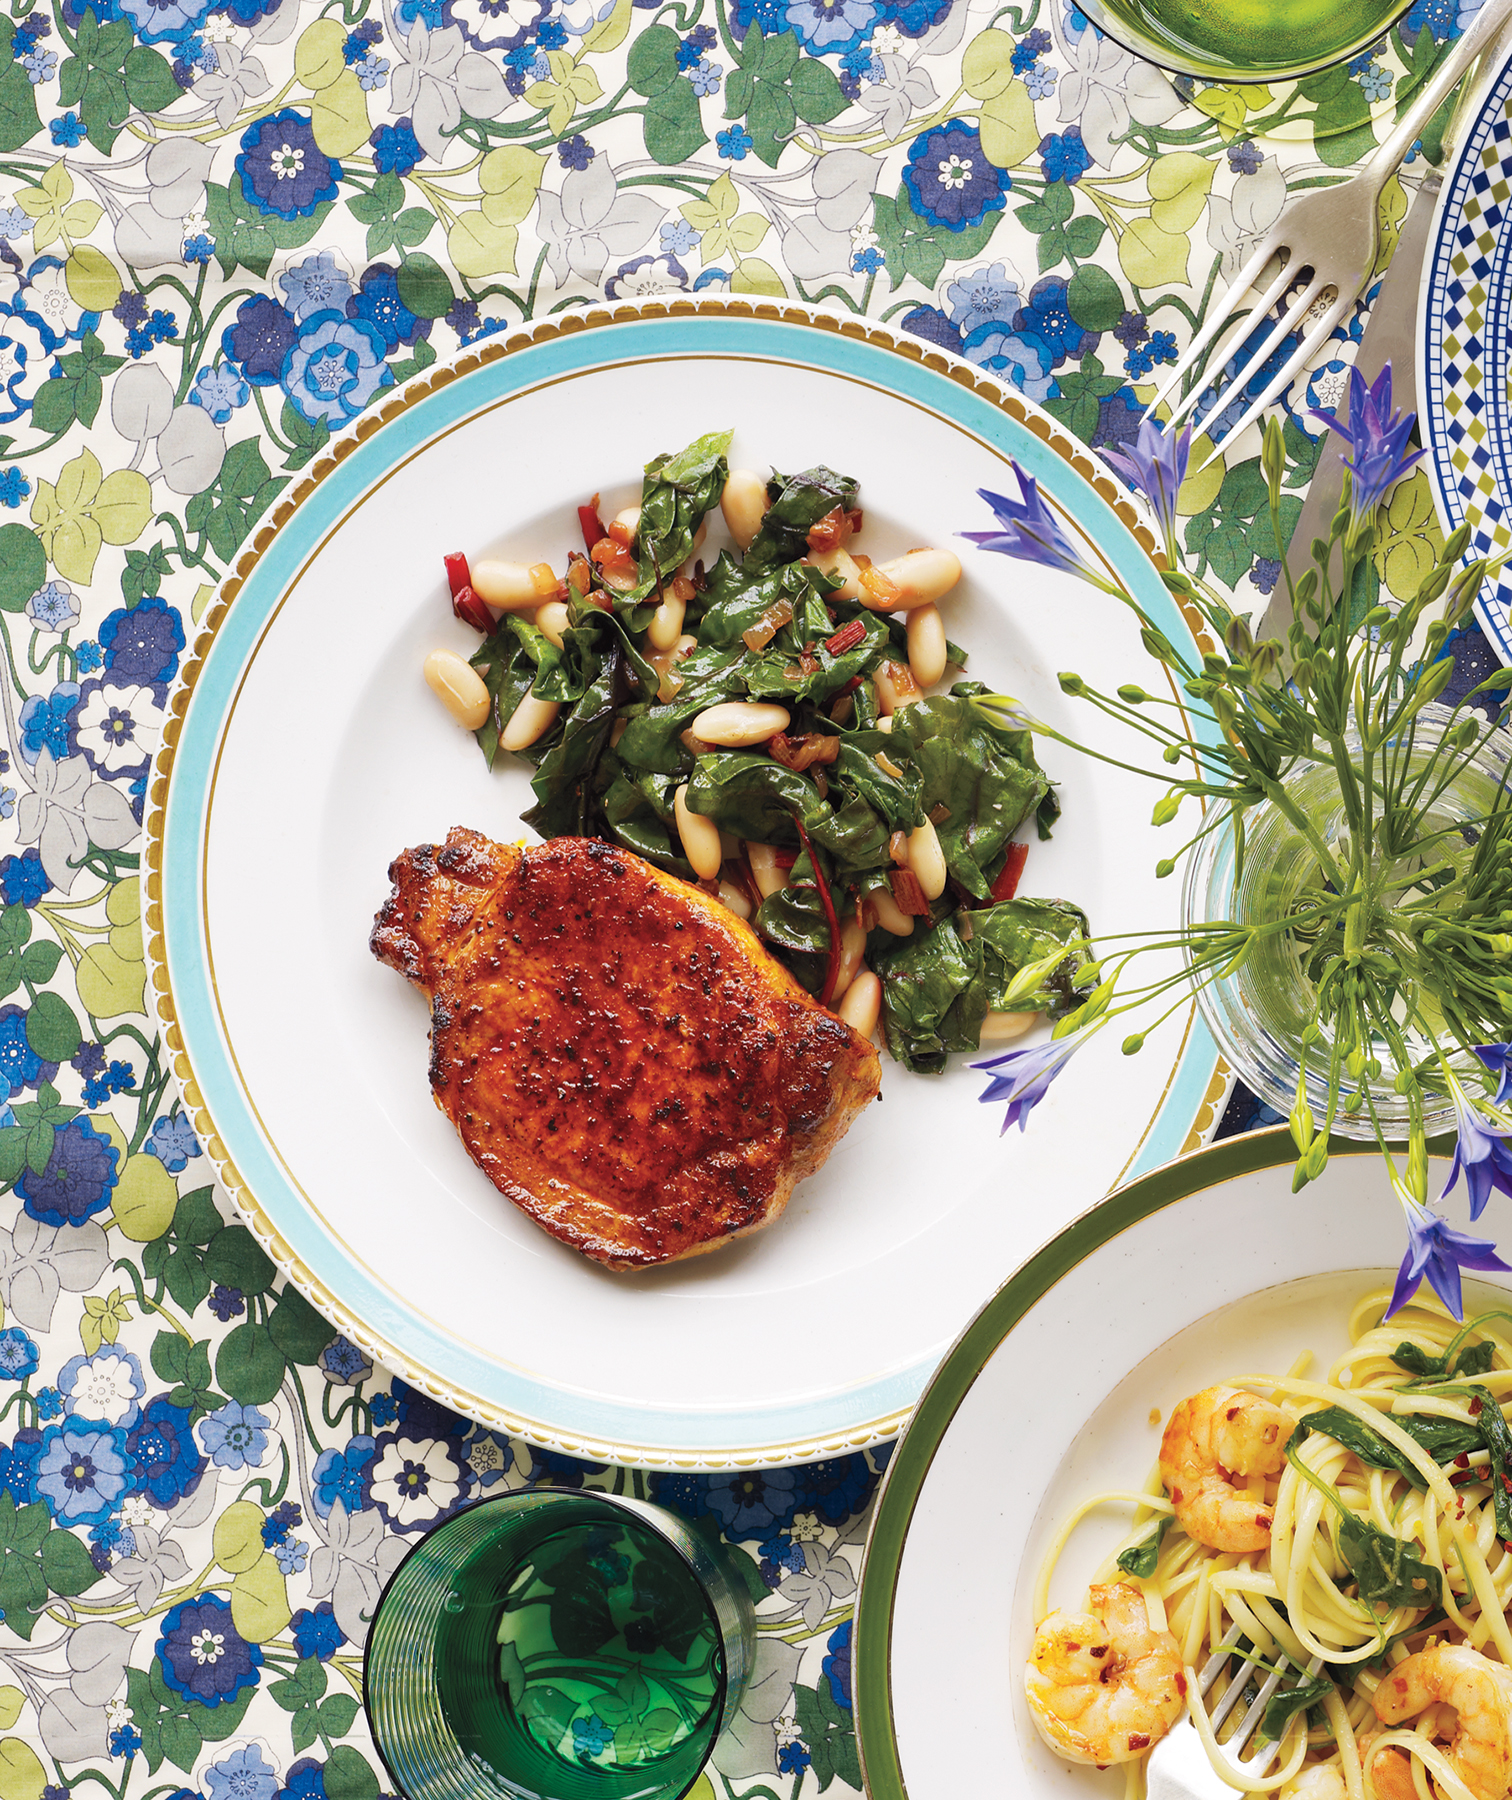 Pork Chops With Chard and White Beans